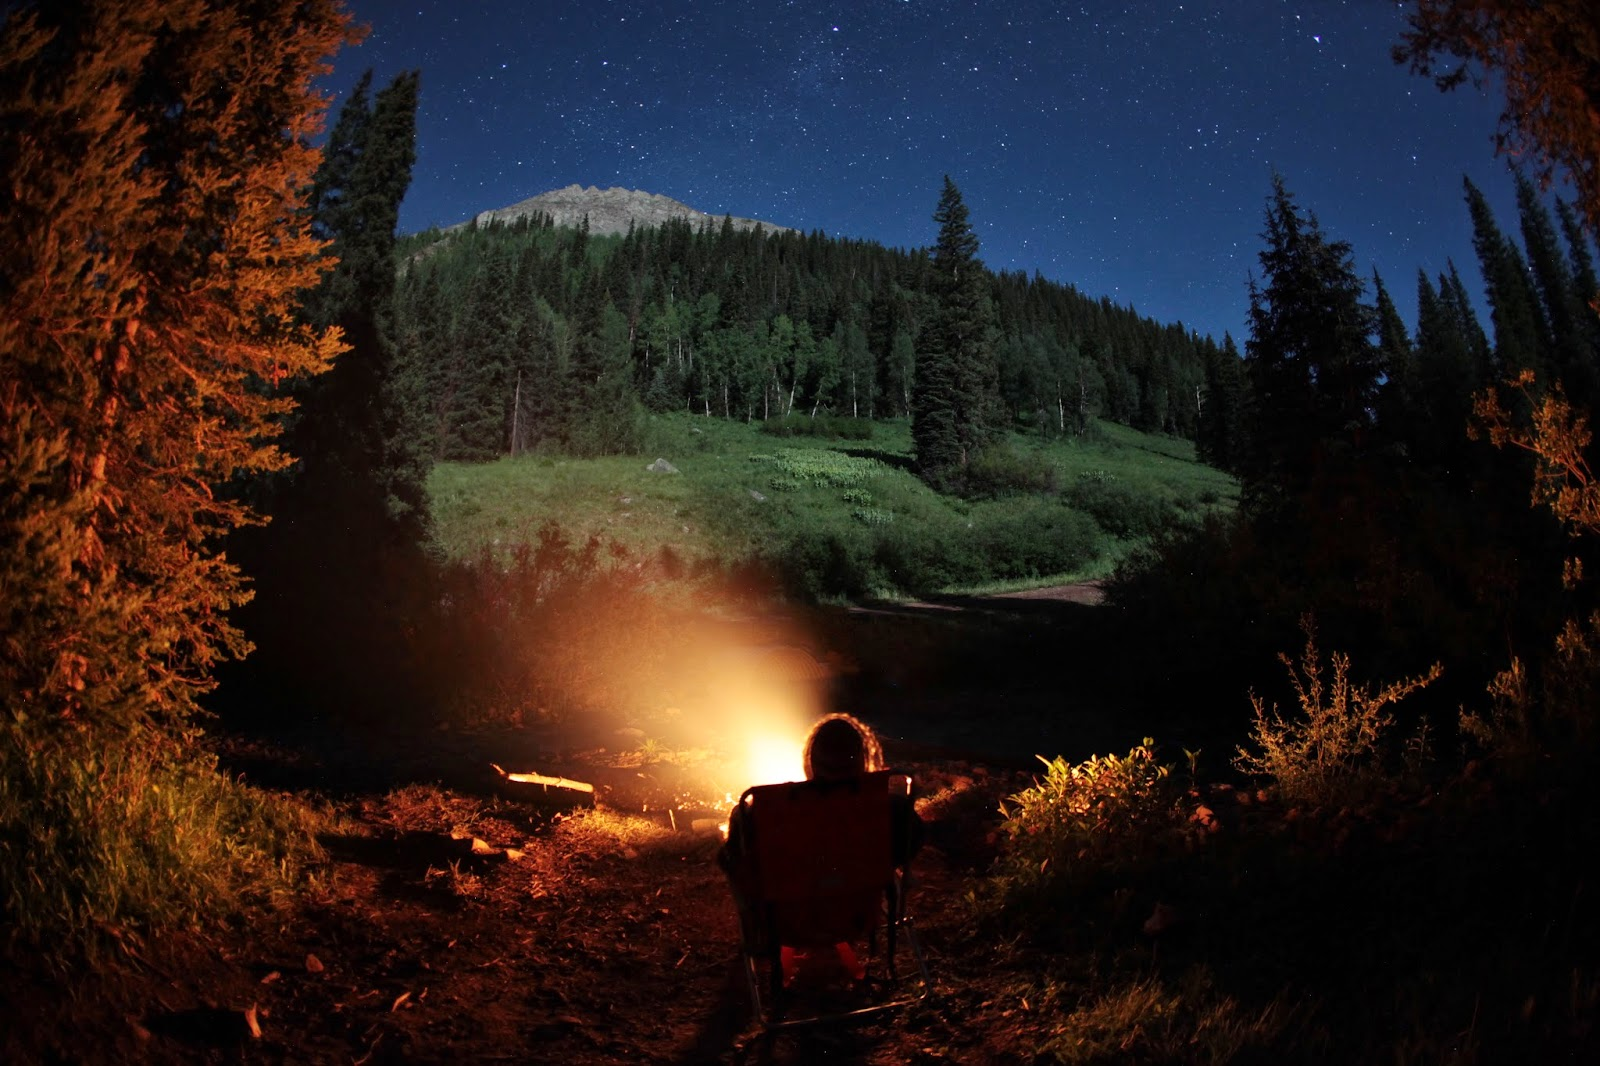 Enjoying a campfire under the stars at a remote campsite in the San Juan National forest southwest of Telluride.